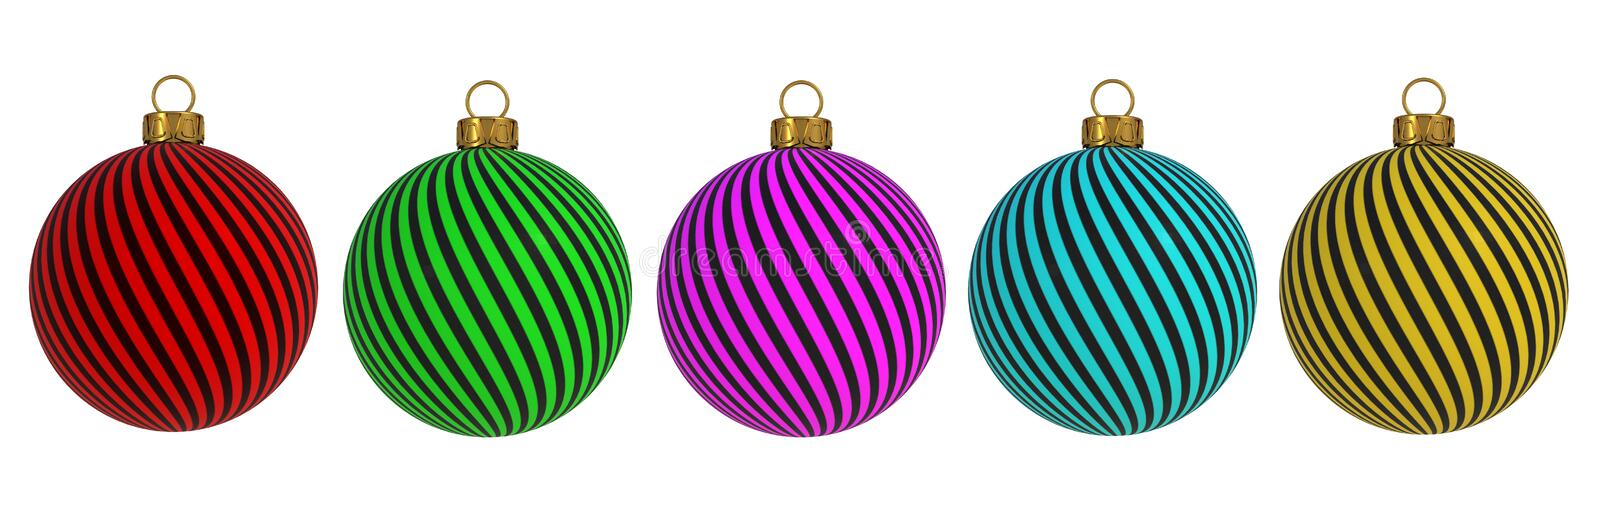 Christmas ball New Year`s Eve decoration convolution lines bauble wintertime hanging adornment souvenir. Traditional ornament hap stock illustration